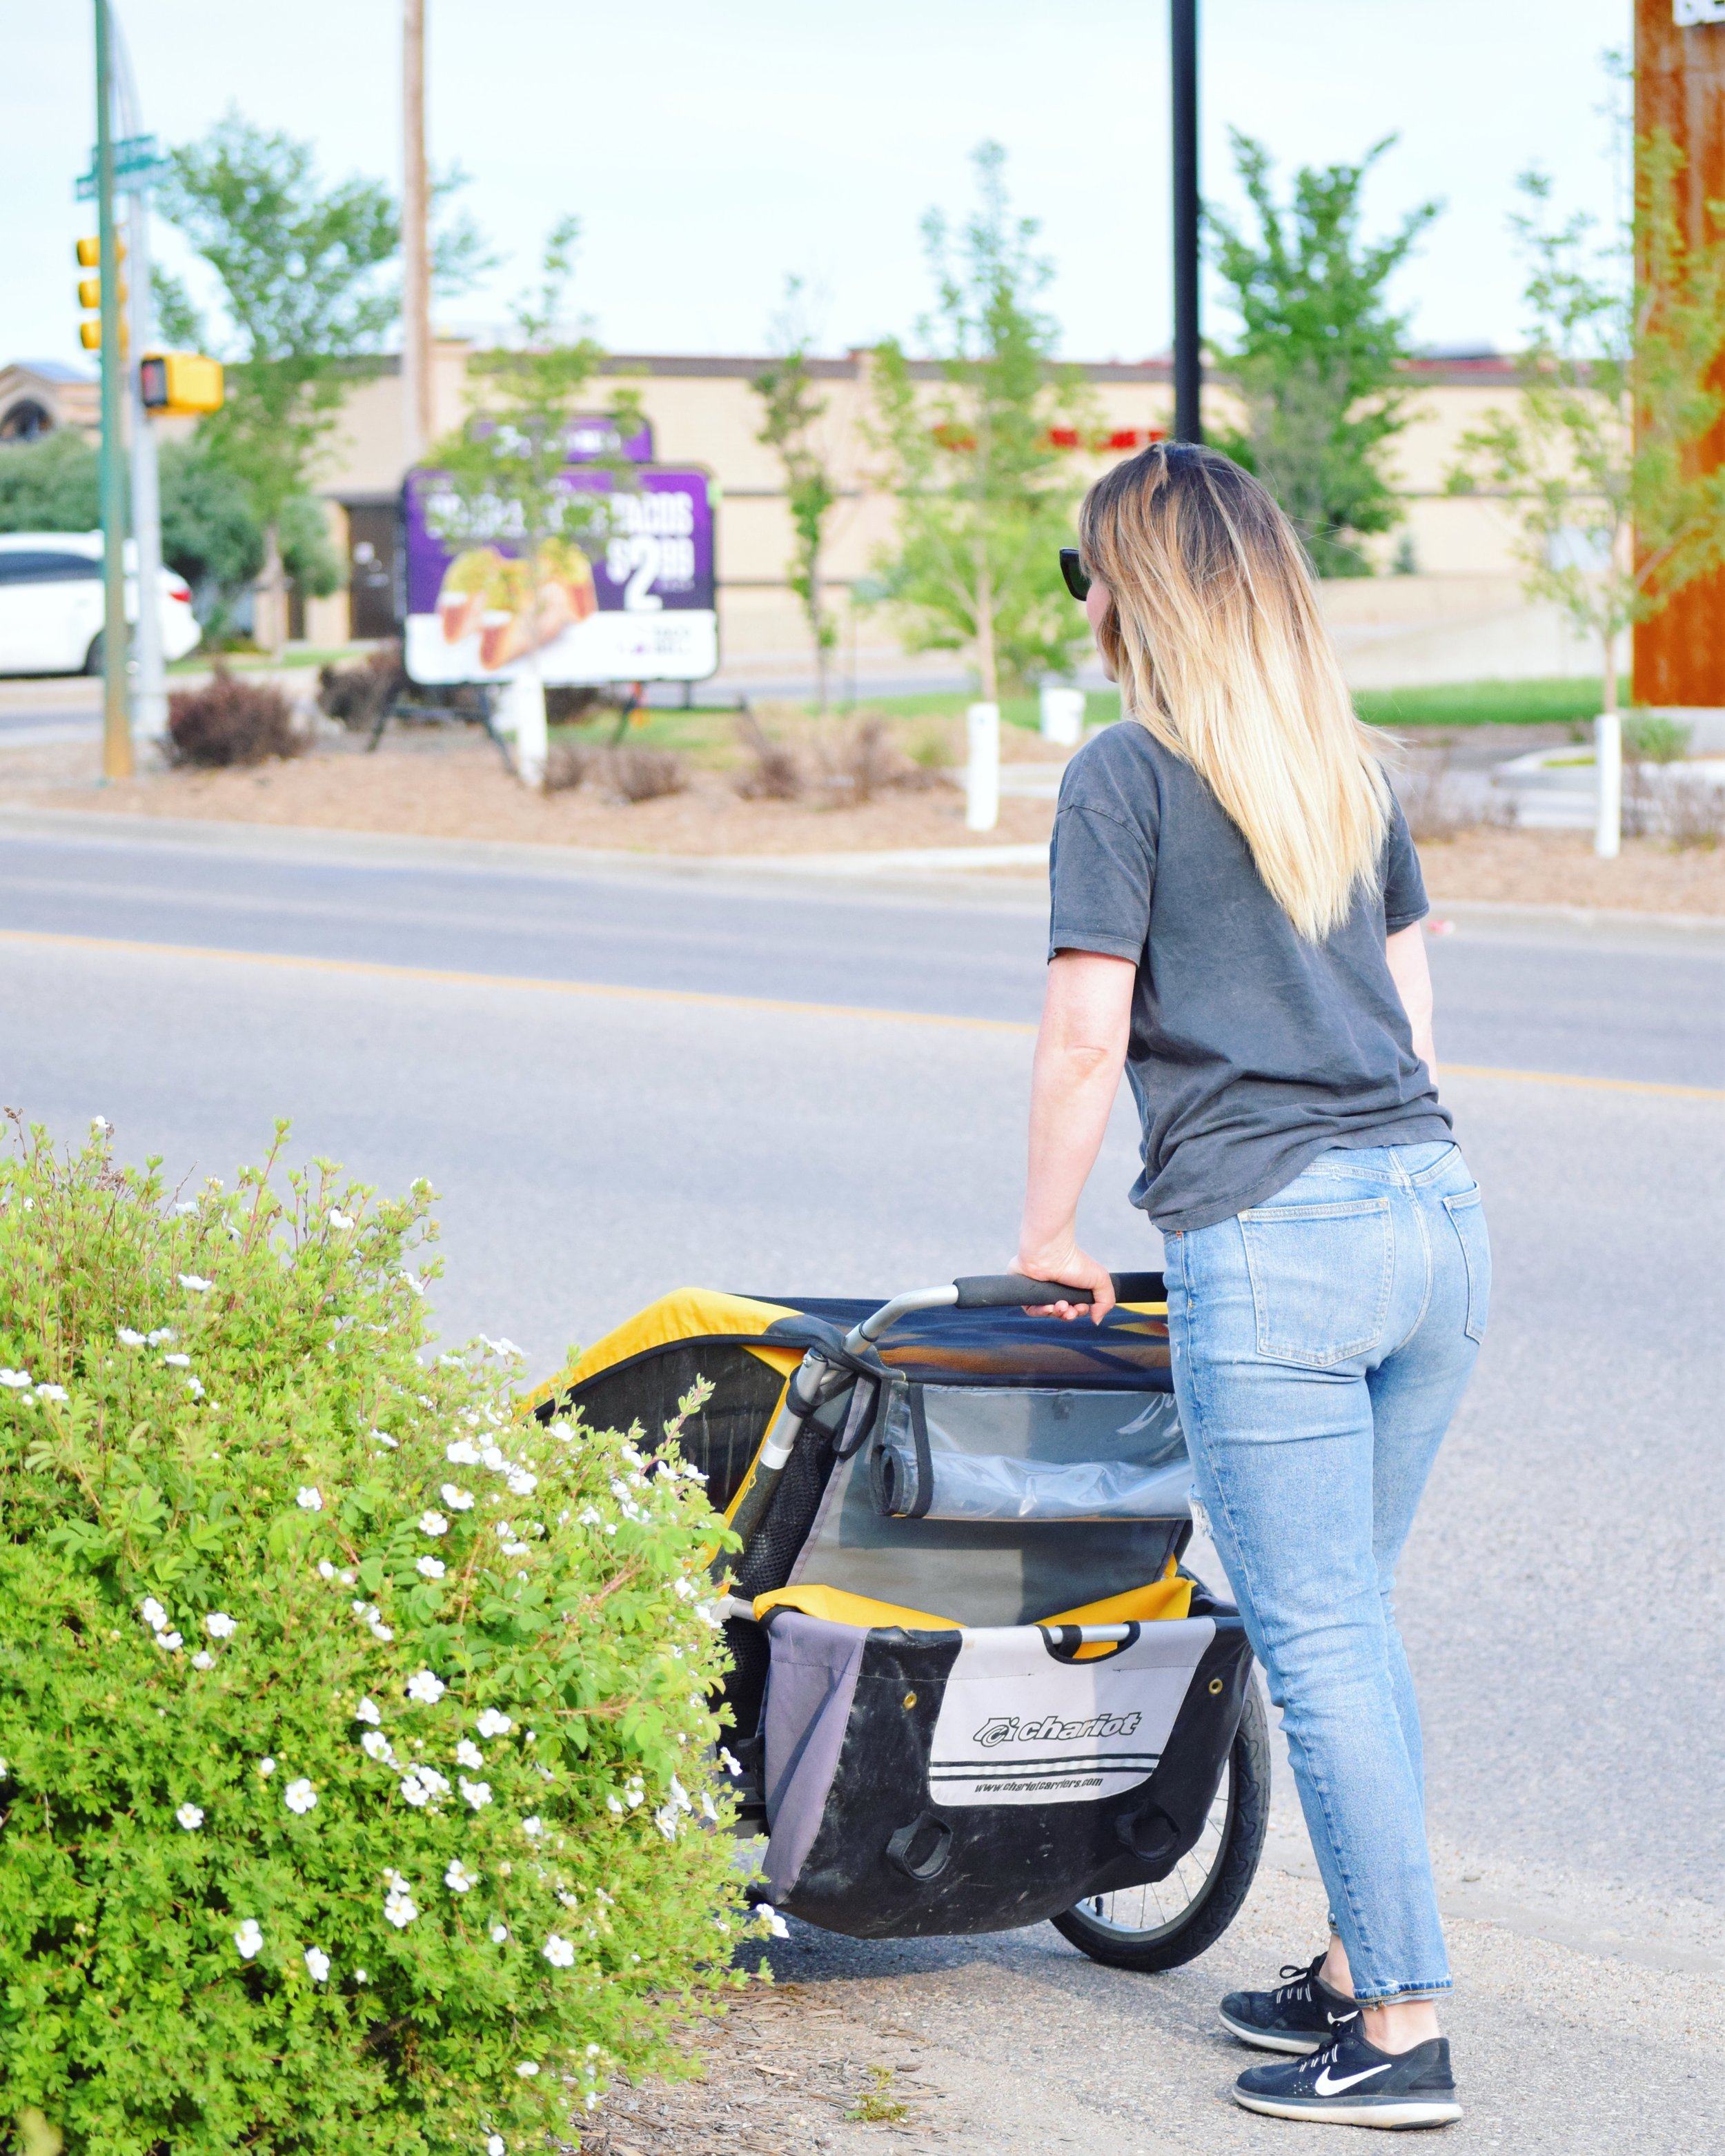 strollers and bad residential planning yxe.jpg